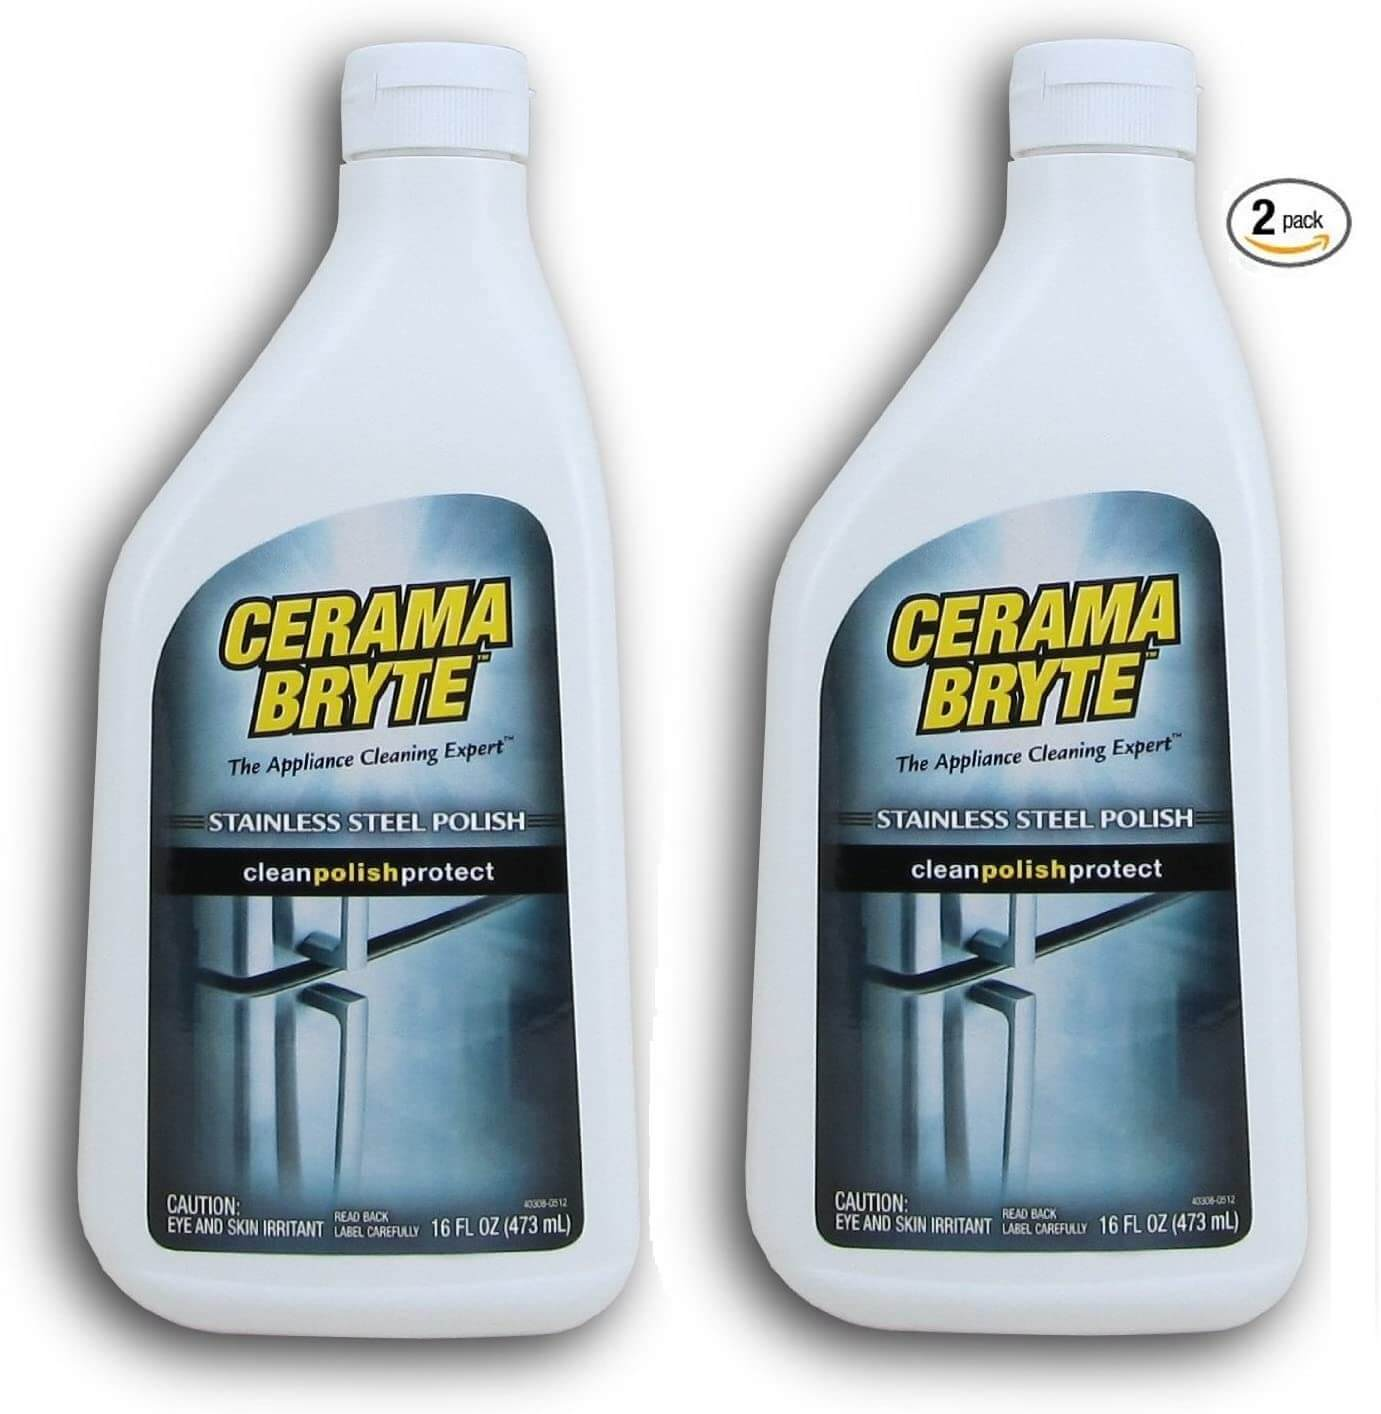 Cerama Bryte Stainless Steel Cleaning Polish